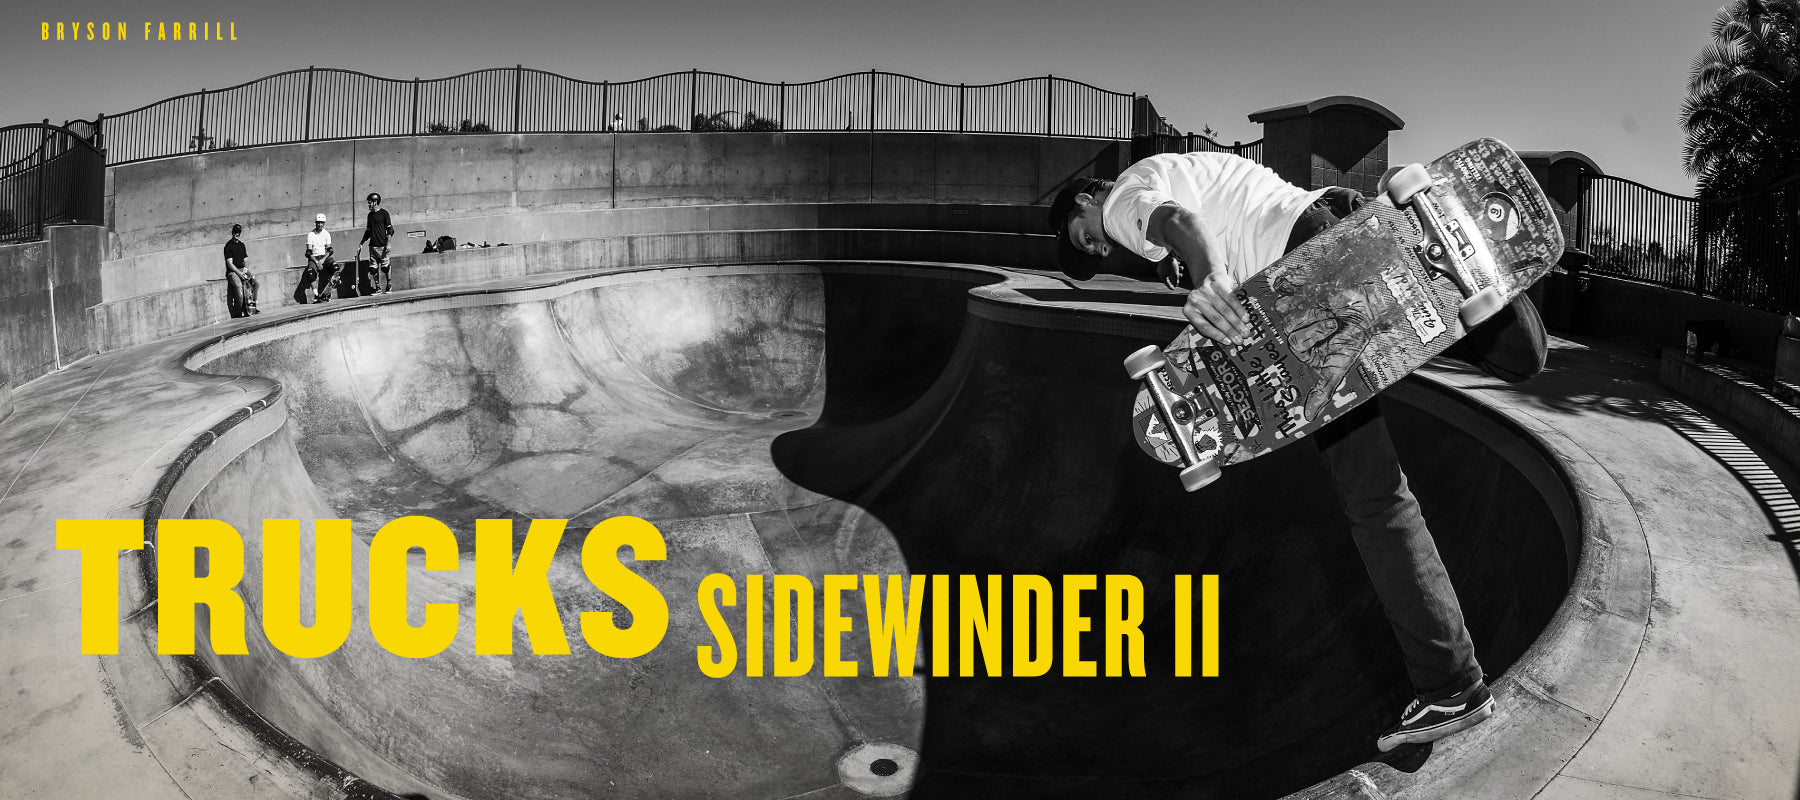 ccfbc053095 Our Sidewinder II trucks feature a patented double kingpin style and best  suited for carving. The knurled kingpins stay securely in place while  riding and ...